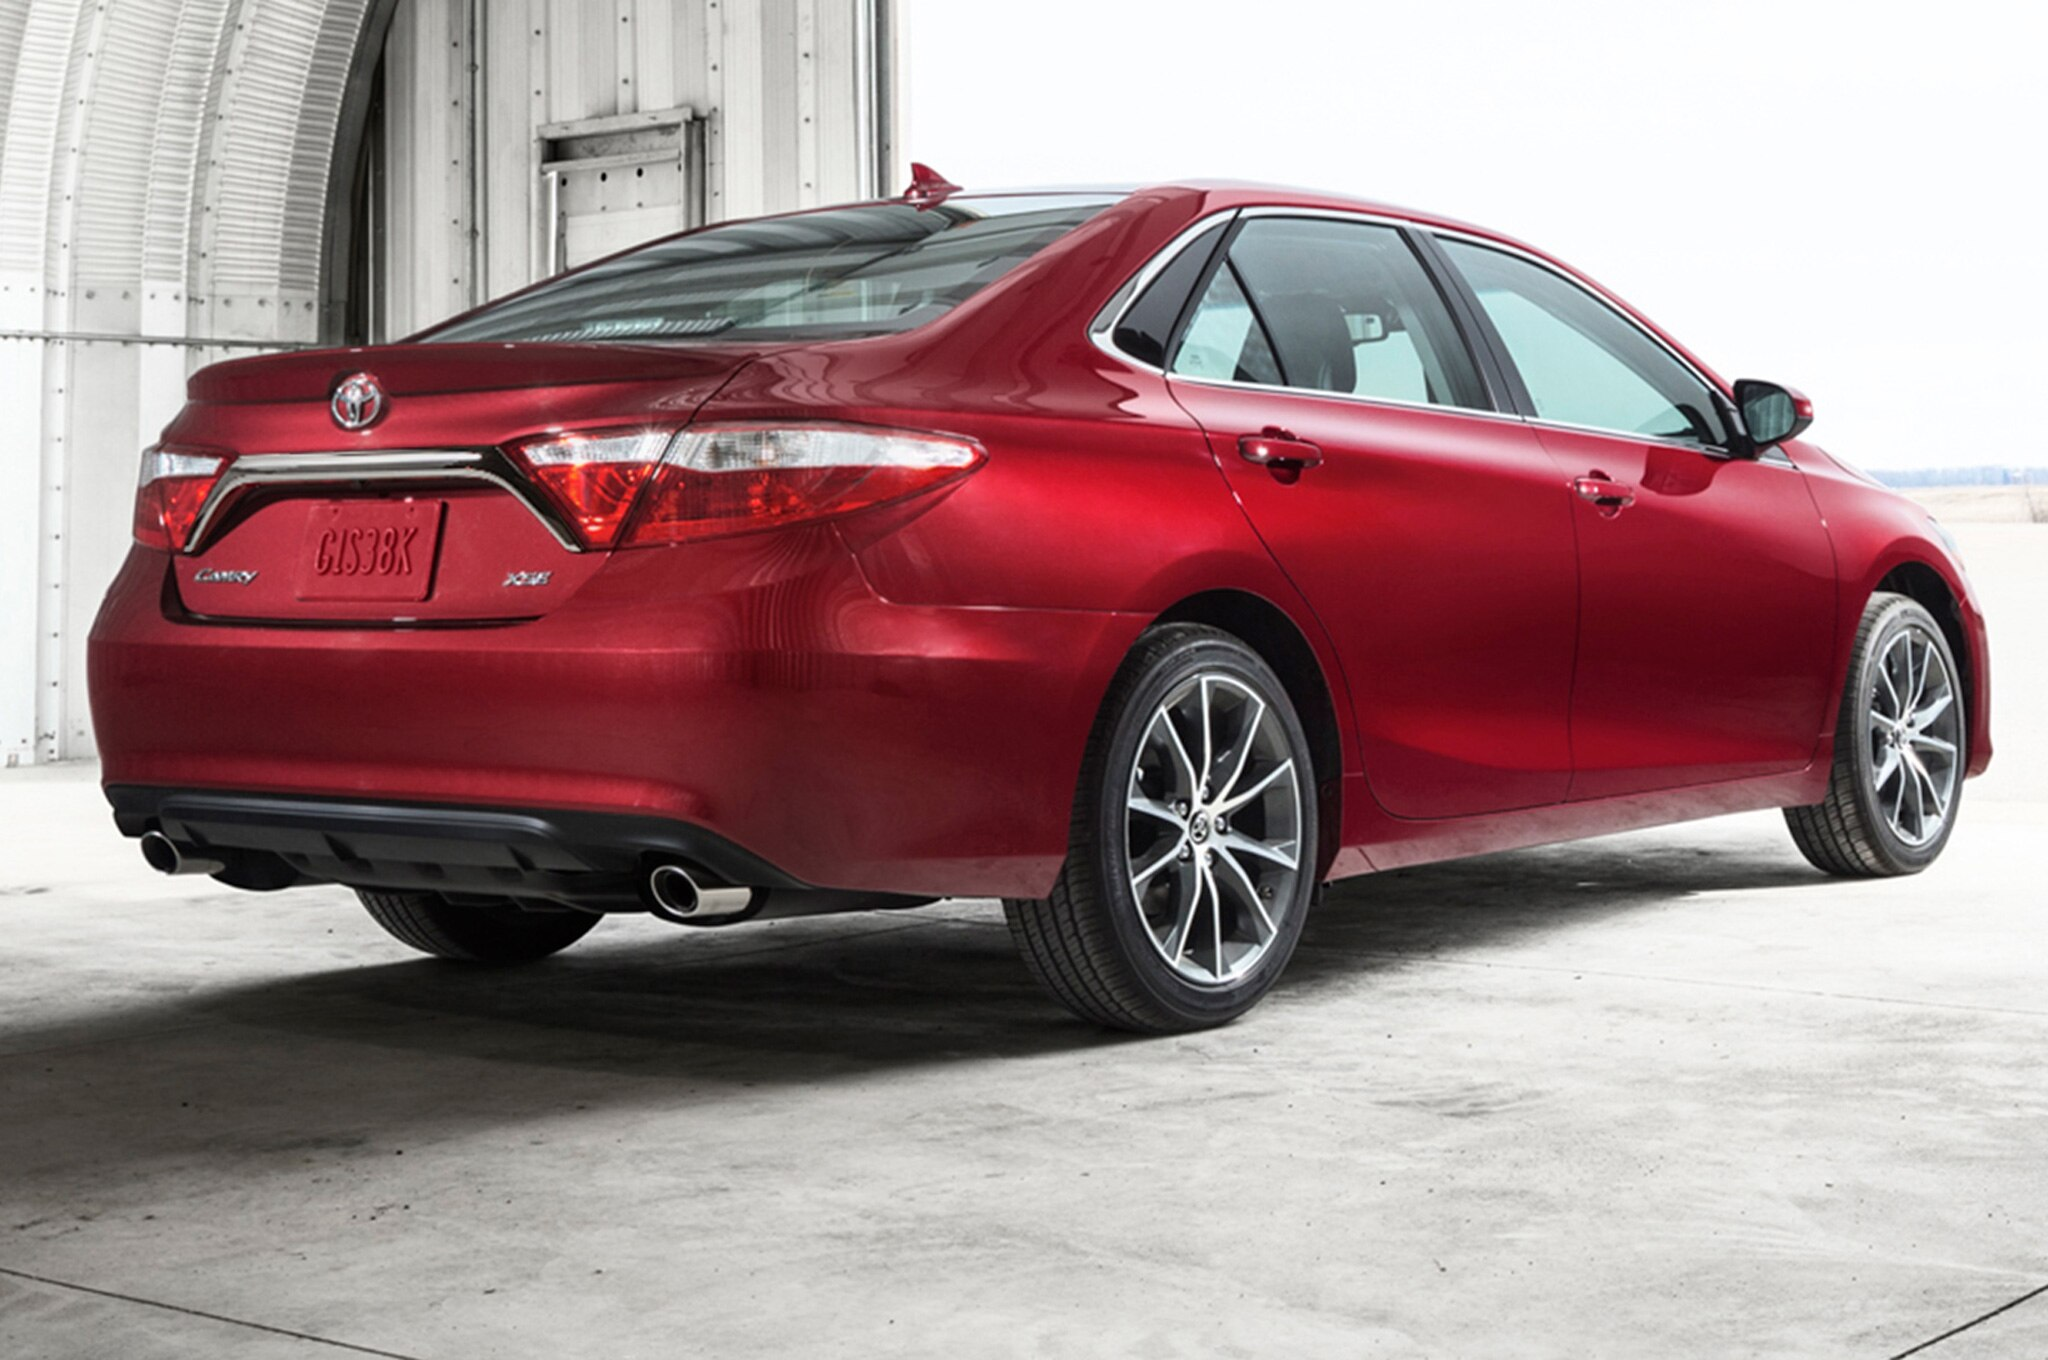 2015 Toyota Camry XSE rear side view report next toyota camry to receive turbo four cylinder?  at alyssarenee.co